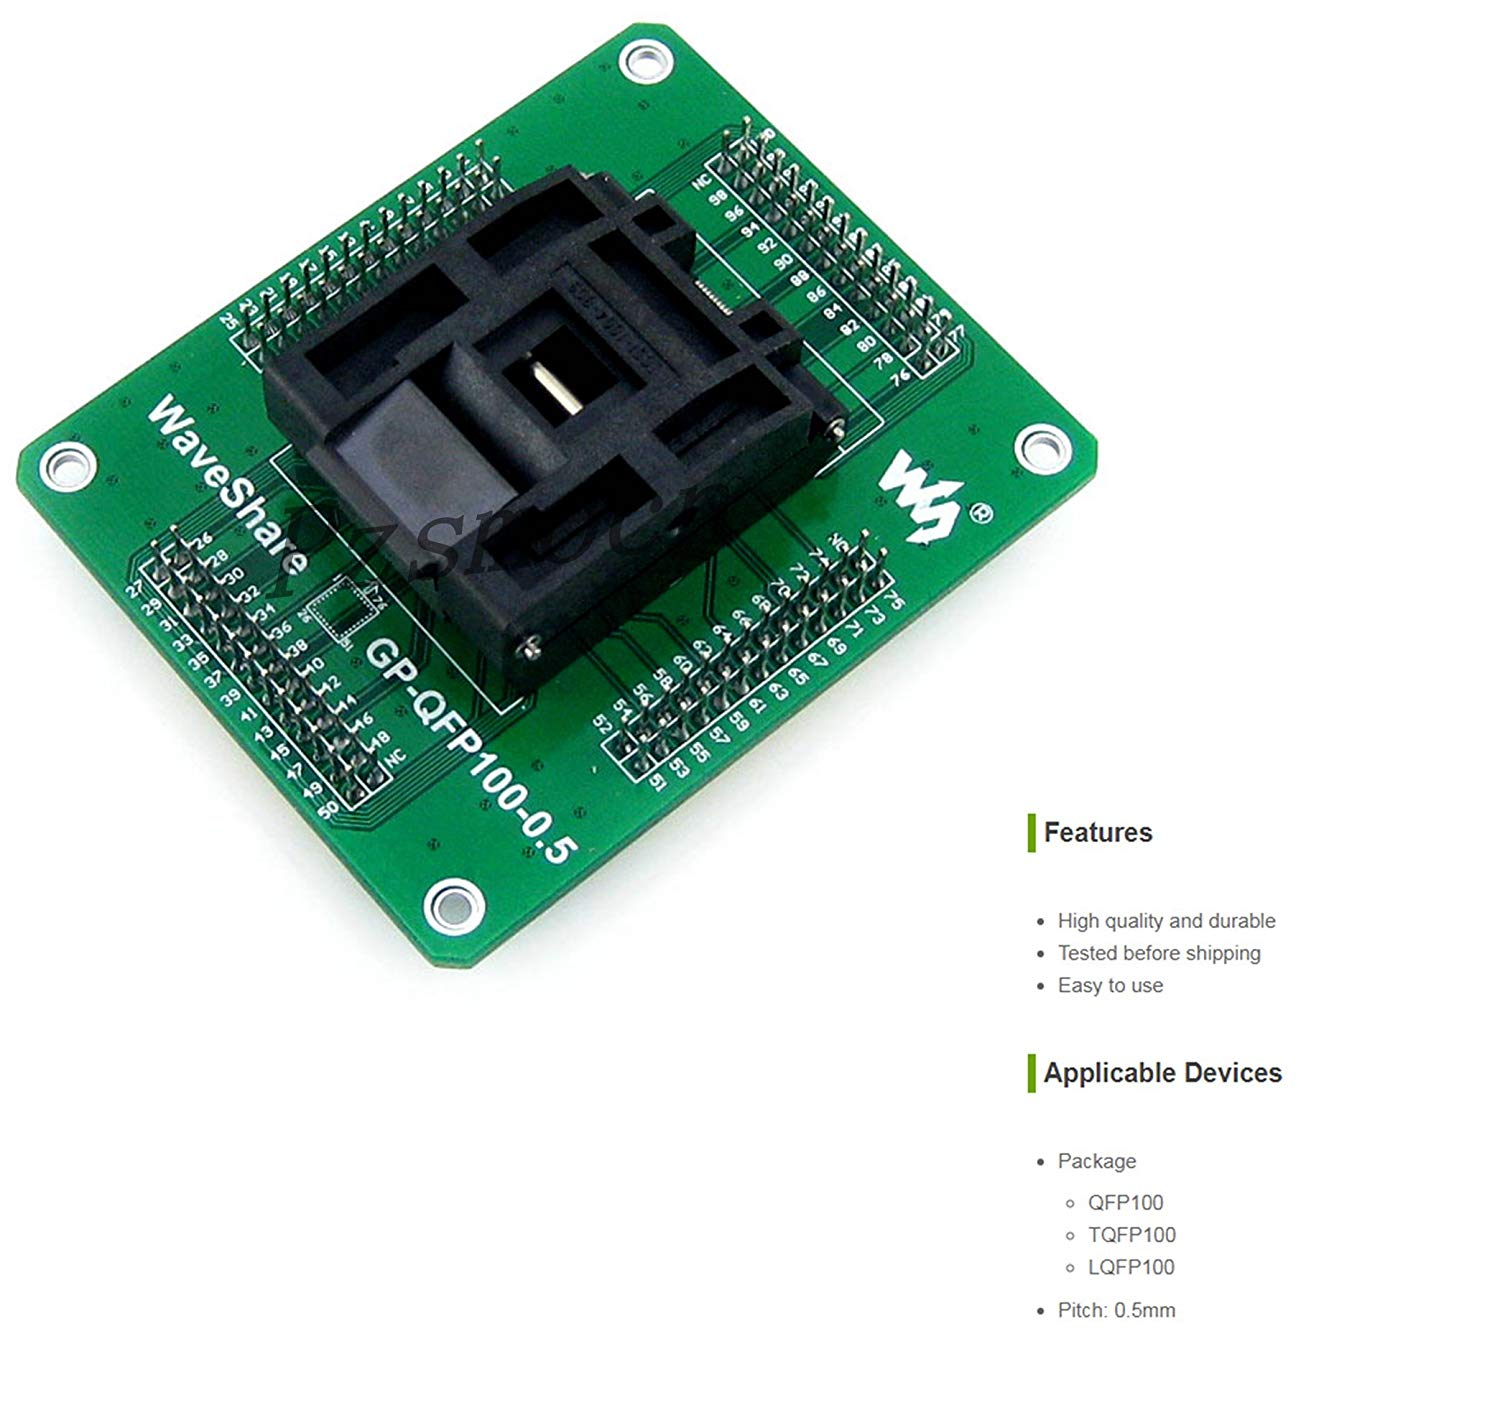 Pzsmocn Programmer Adapter GP-QFP100-0.5 Yamaichi IC Test Socket and Programming Adapter for QFP100 TQFP100 LQFP100 package Pitch 0.5mm